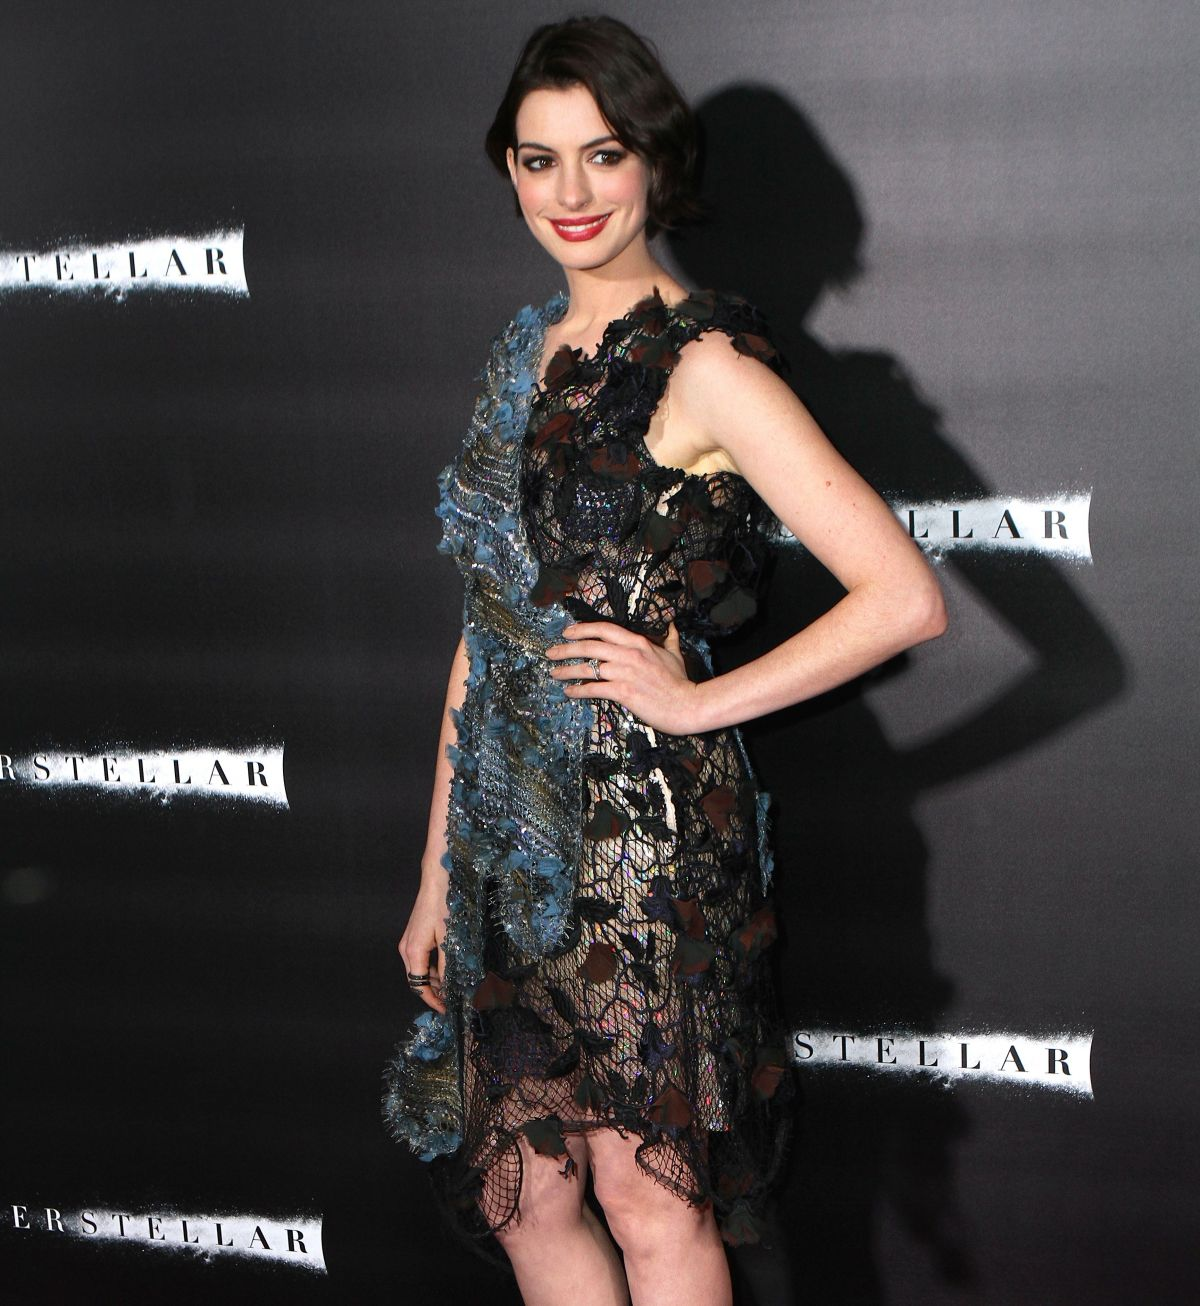 Anne Hathaway At The Hustle Premiere In Hollywood: ANNE HATHAWAY At Interstellar Premiere In New York